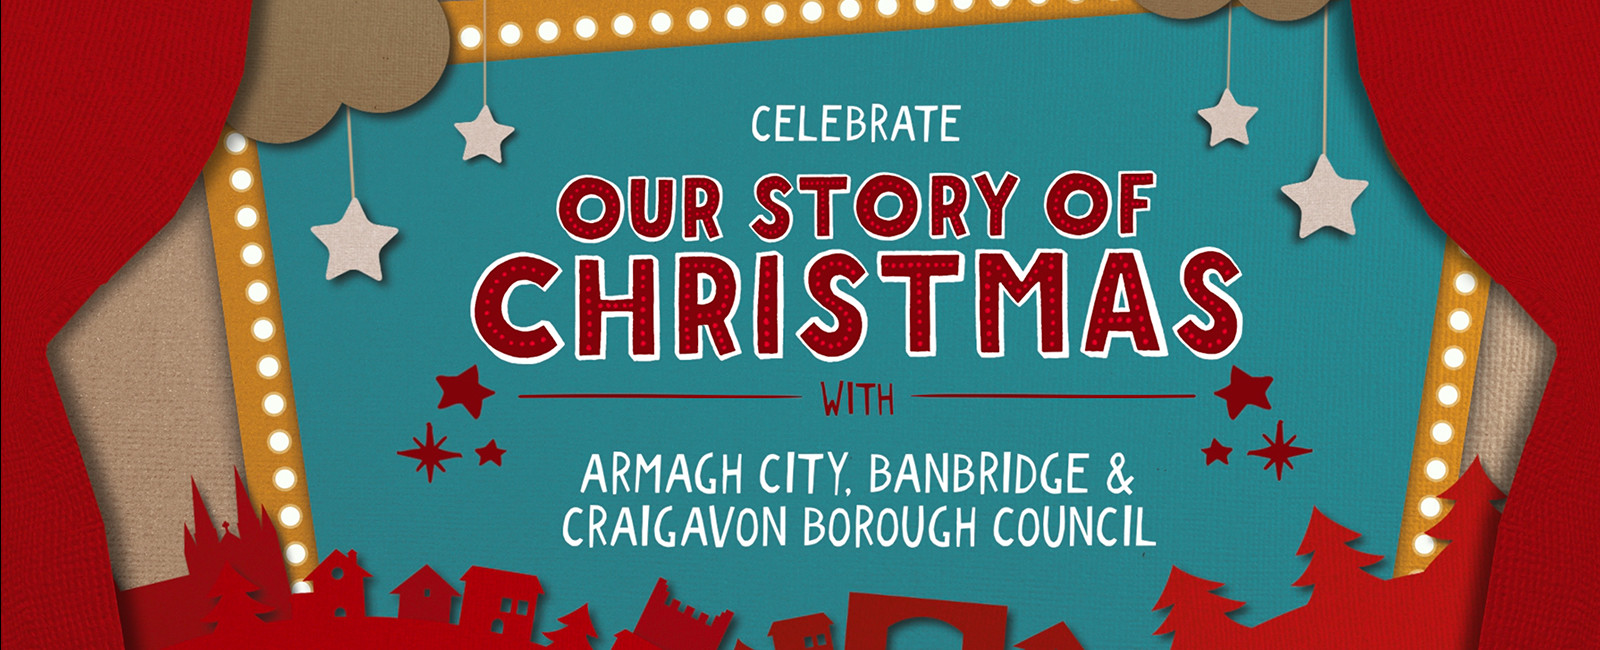 Armagh City, Banbridge and Craigavon Borough Council: Our Story of Christmas campaign